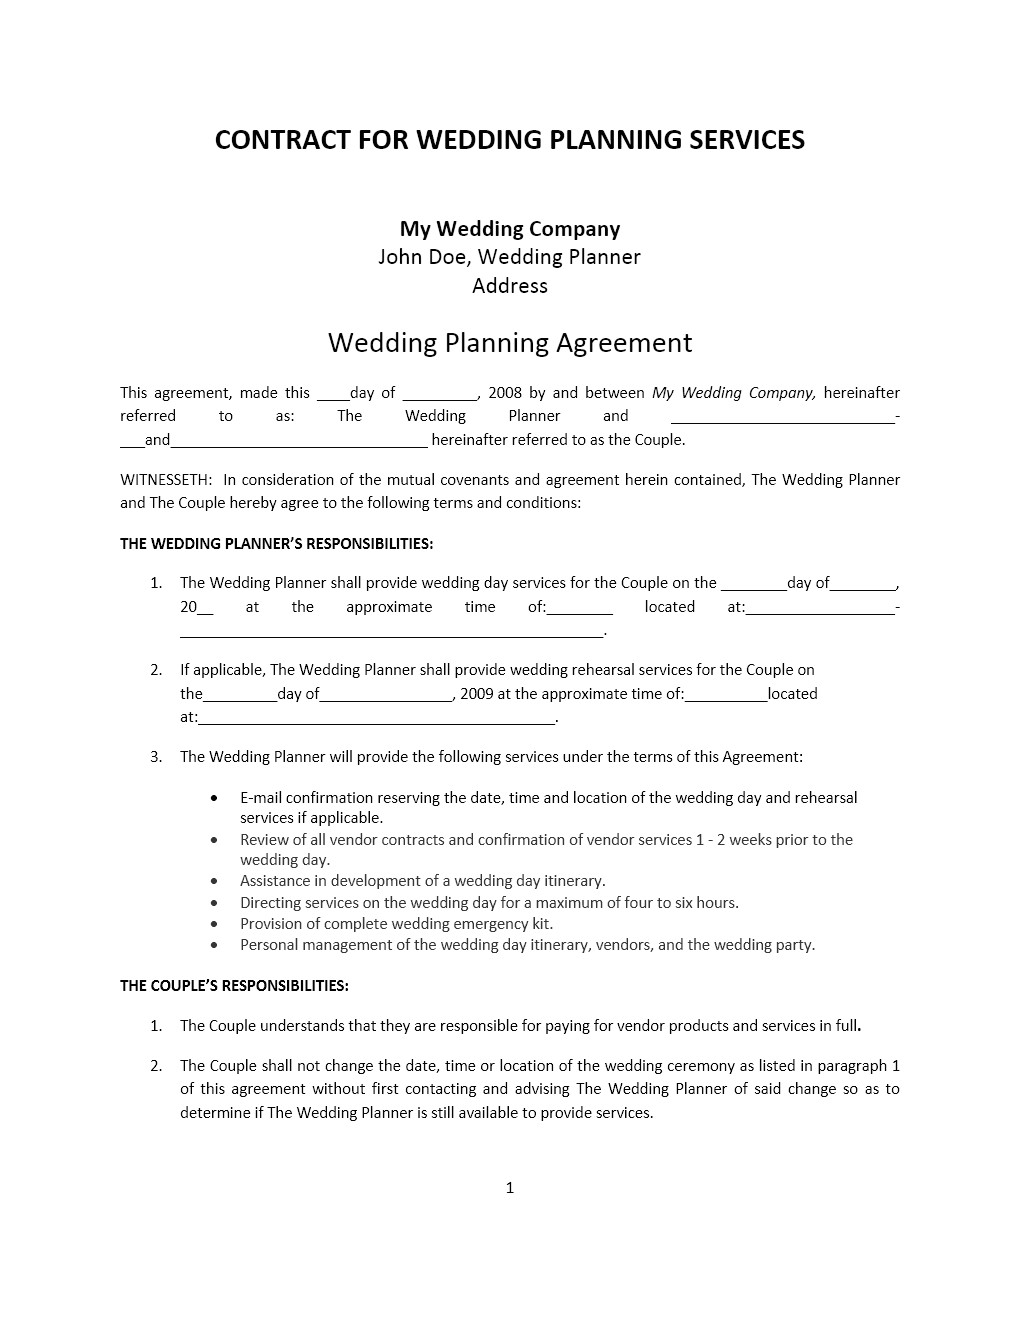 wedding planner contract template respond